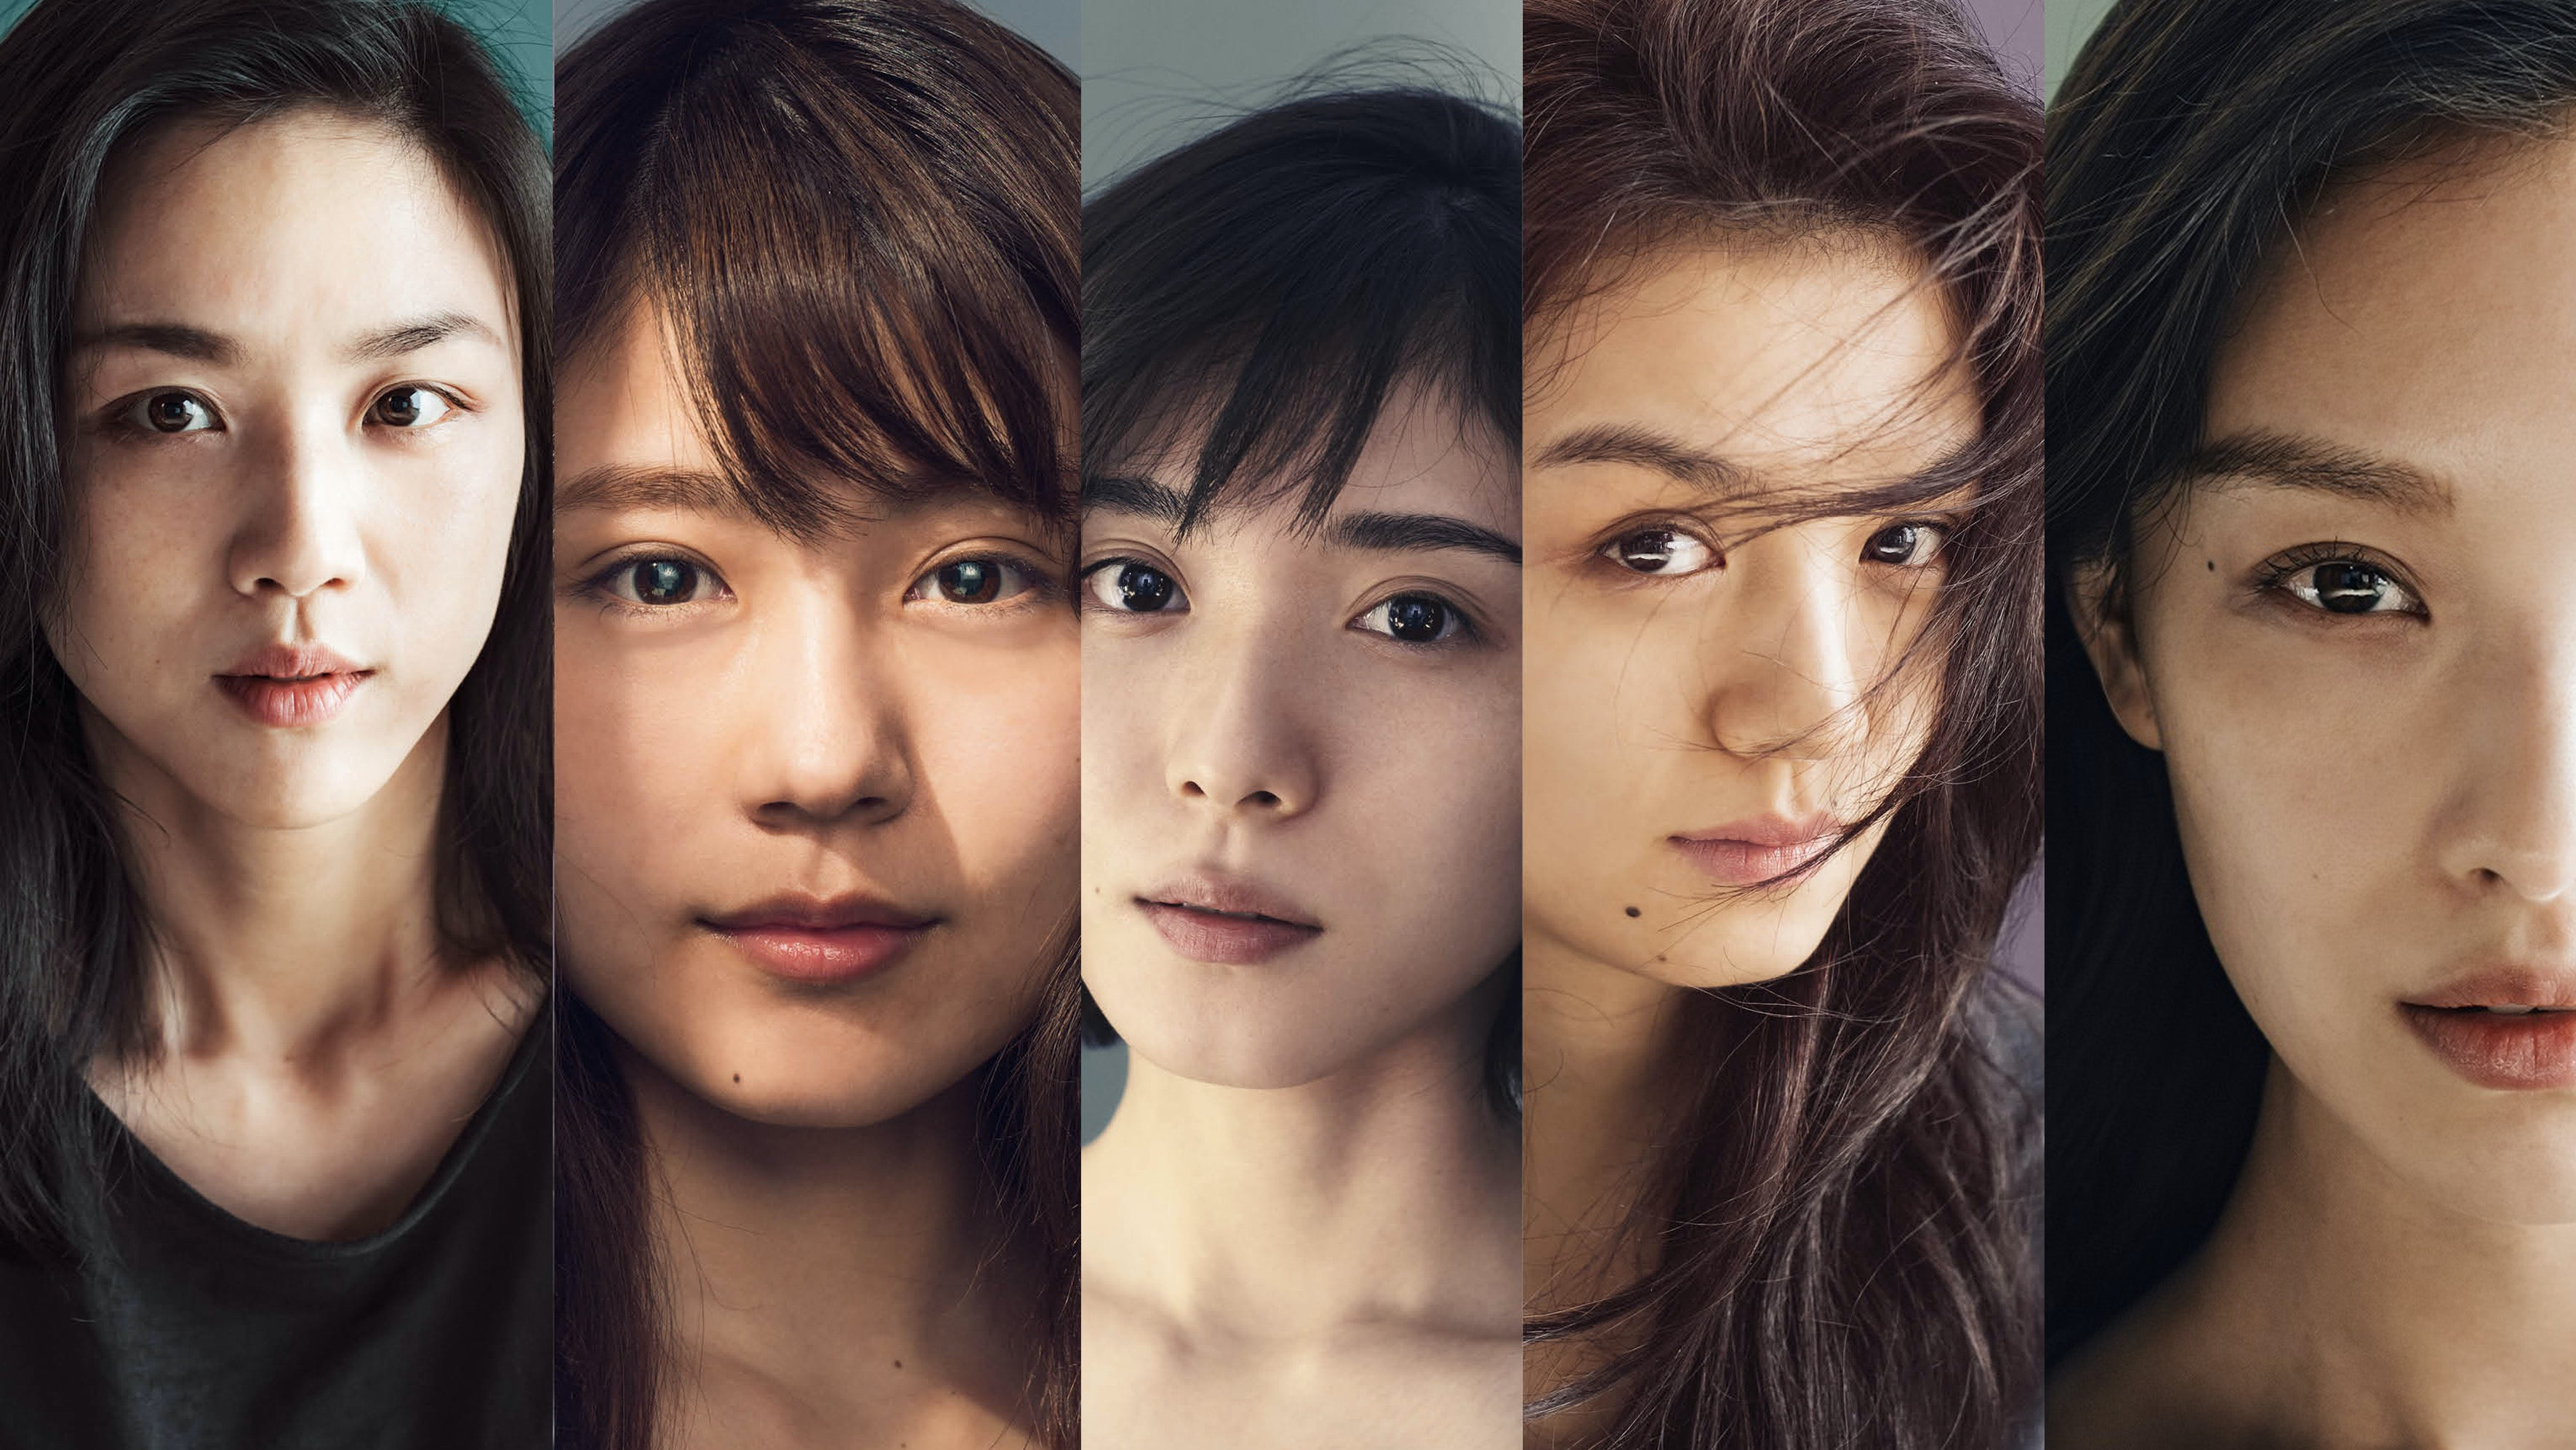 SK-II's 2018 Bare Skin Project campaign images | Source: SK-II